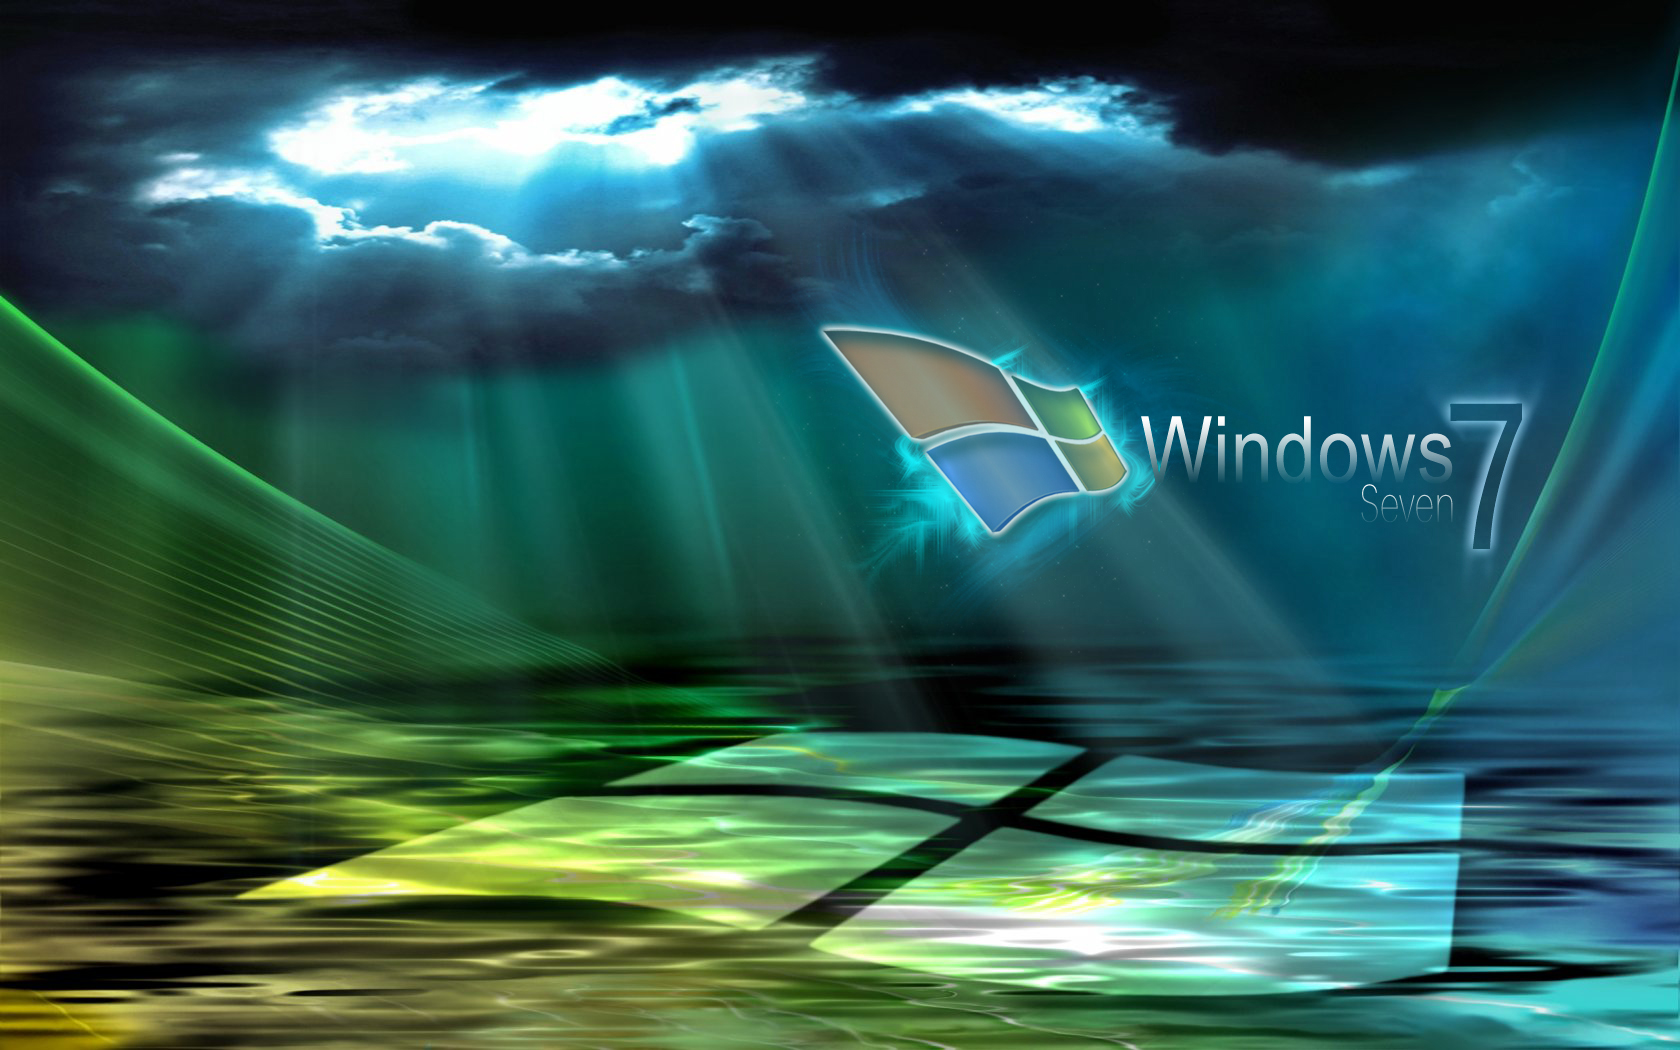 windows 7 hd wallpaper - wallpapersafari